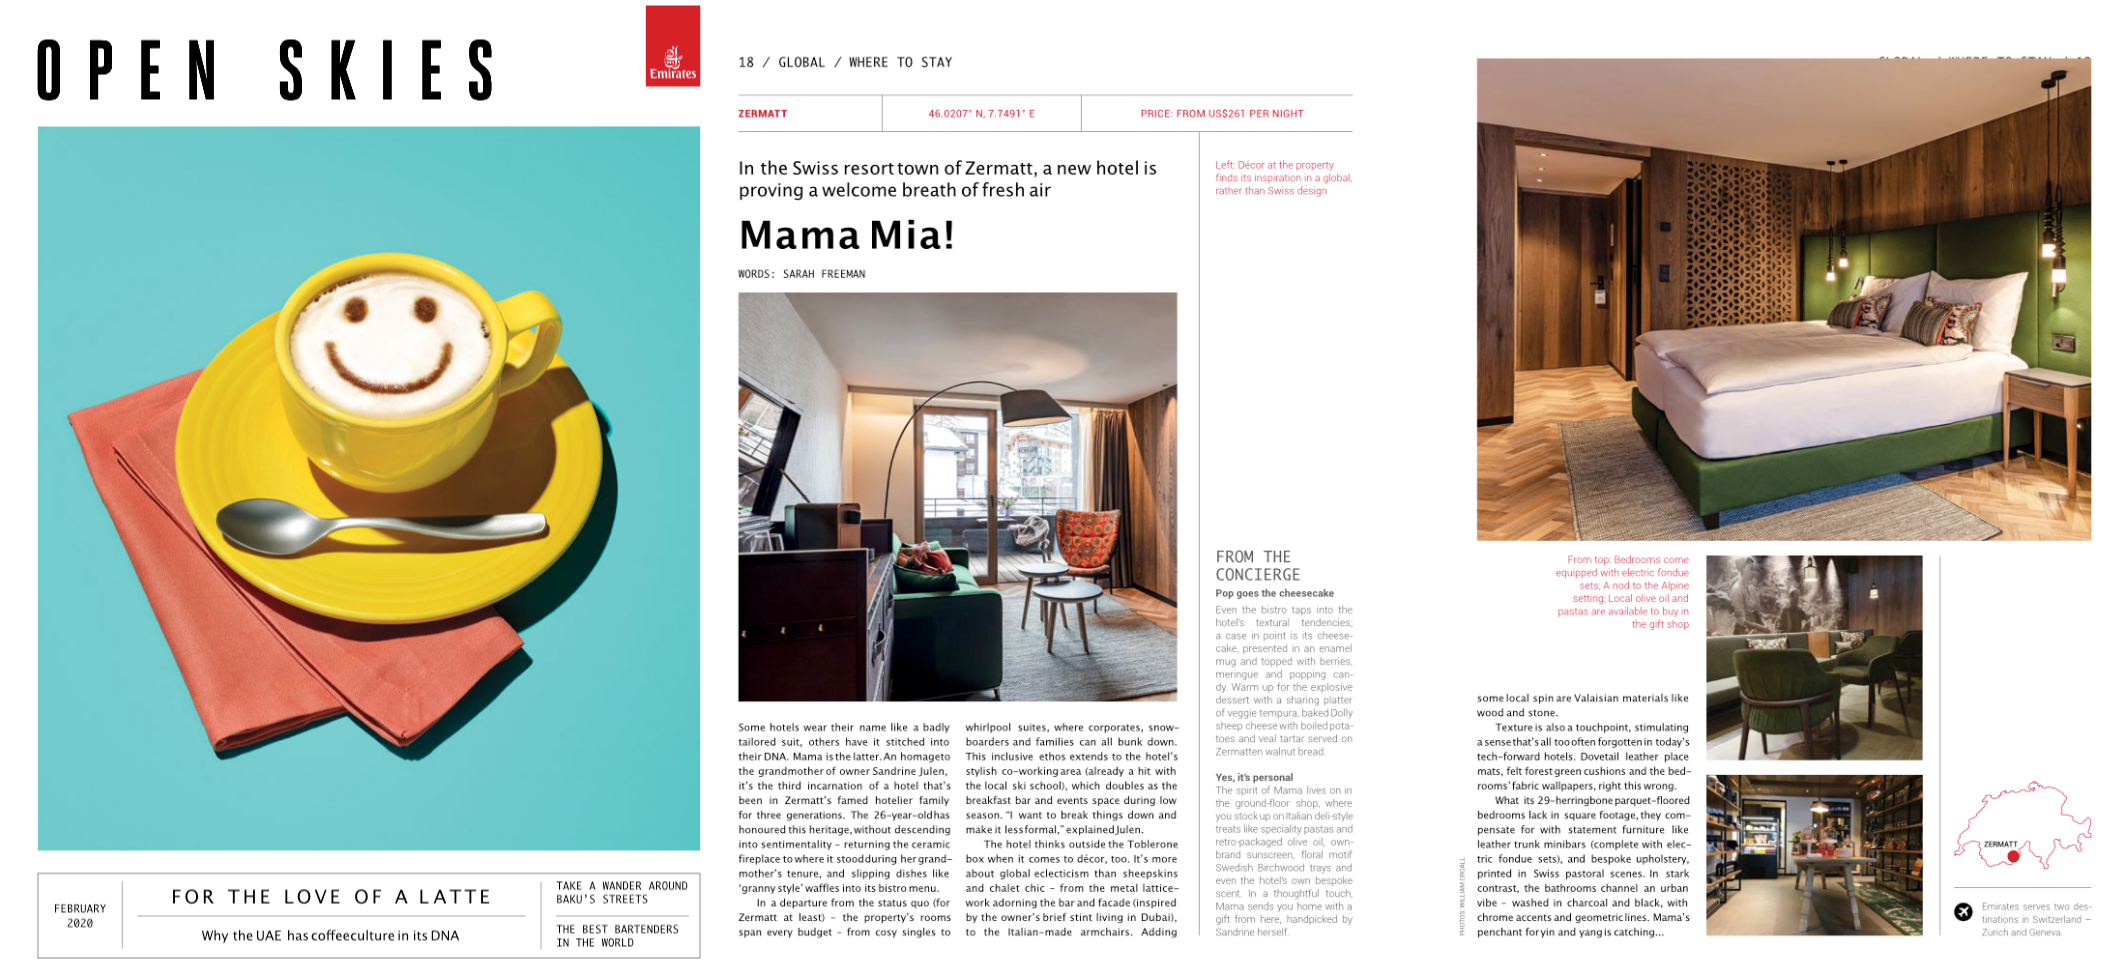 Trench armchair at Zermama Hotel on Openskies